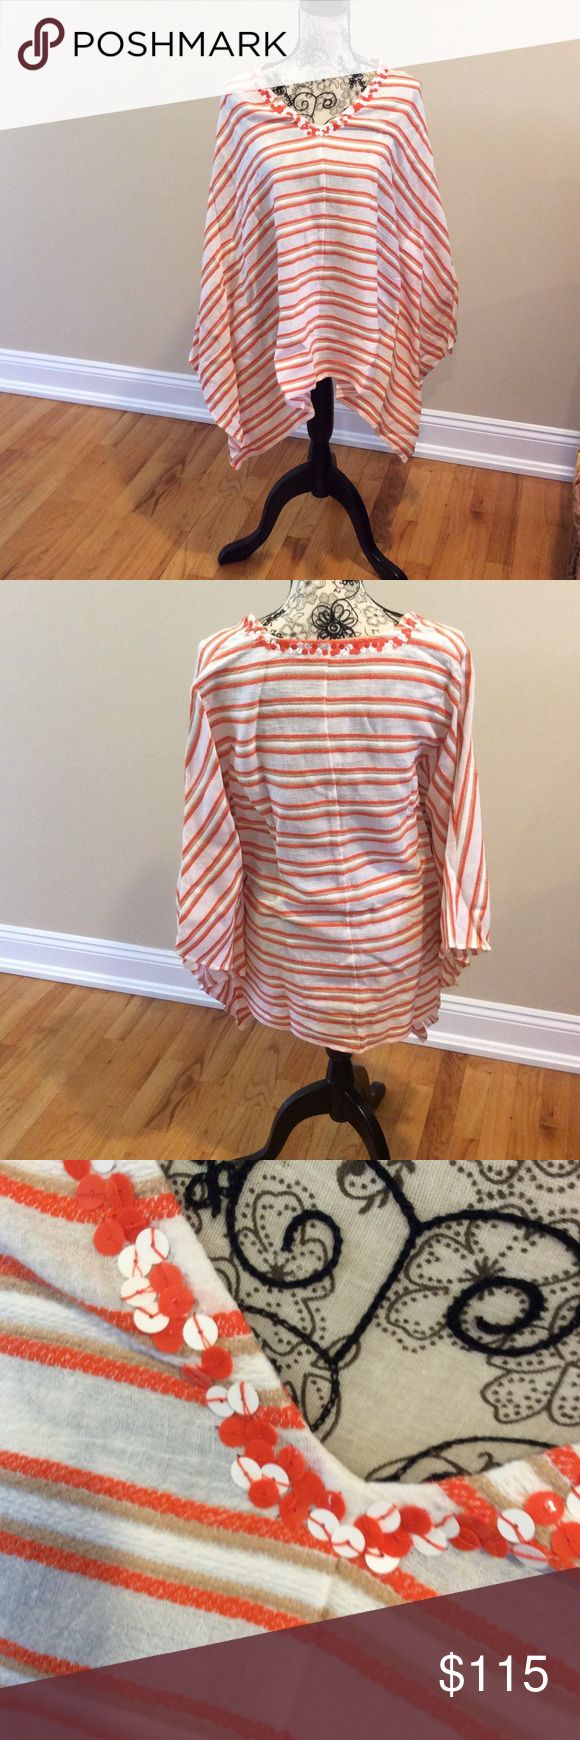 Nwt Michael Kors batwing top Nwt orange white and beige striped batwing top MICHAEL Michael Kors Tops Blouses